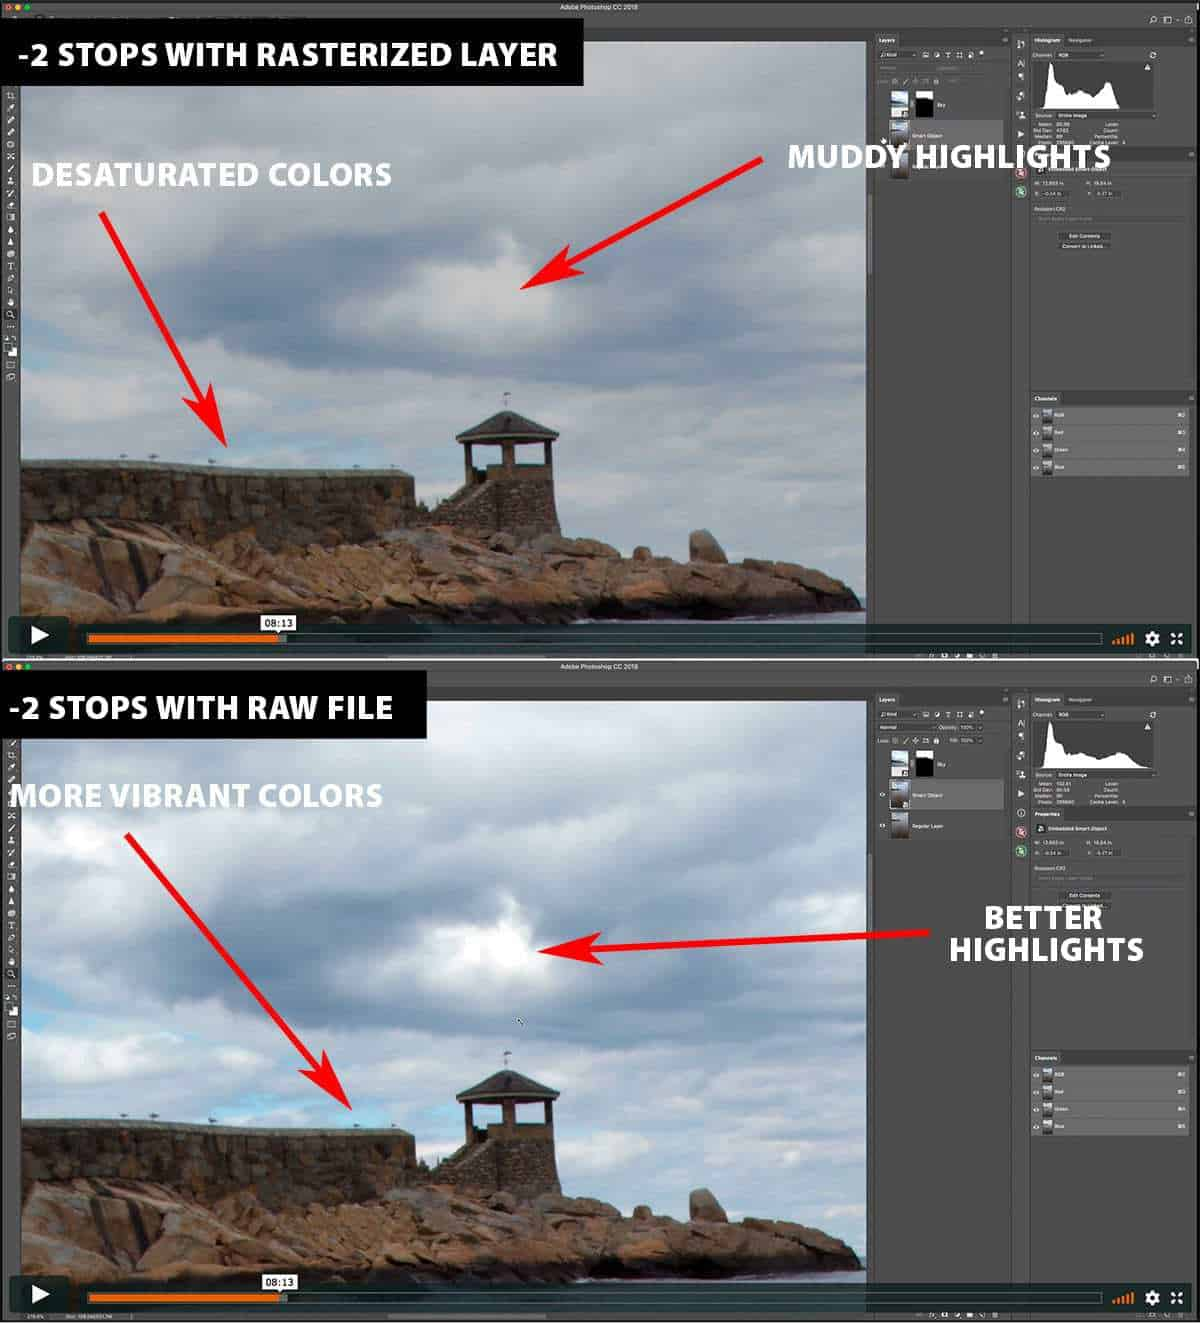 Smart object and a Rasterized Layer in Photoshop.